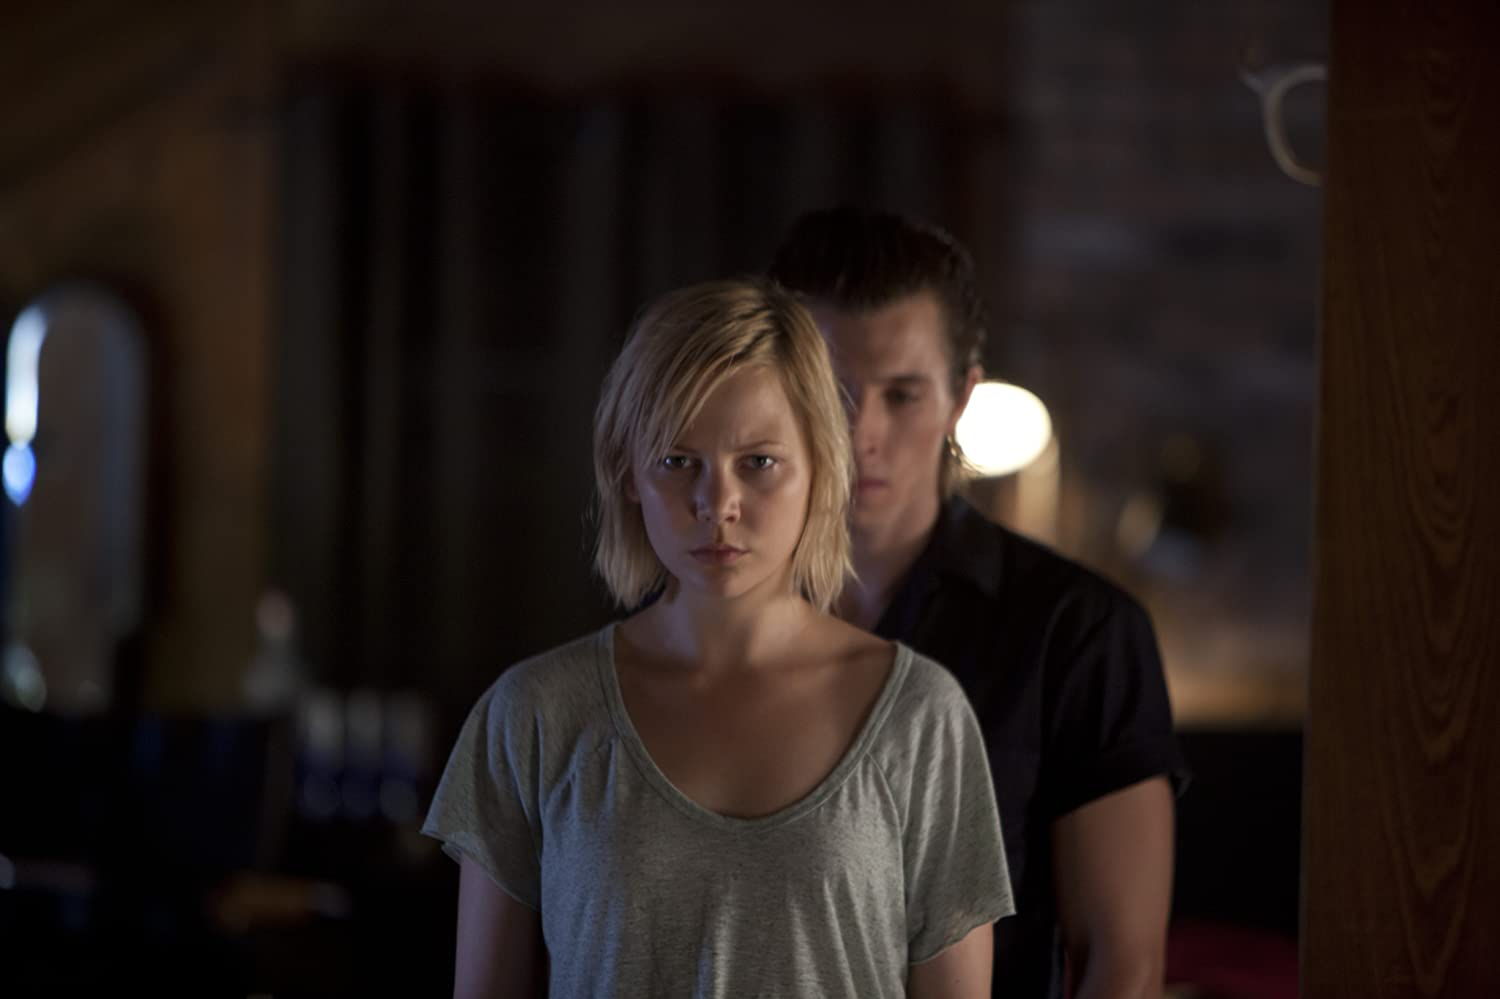 Adelaide Clemens and Beau Knapp in No One Lives (2012)